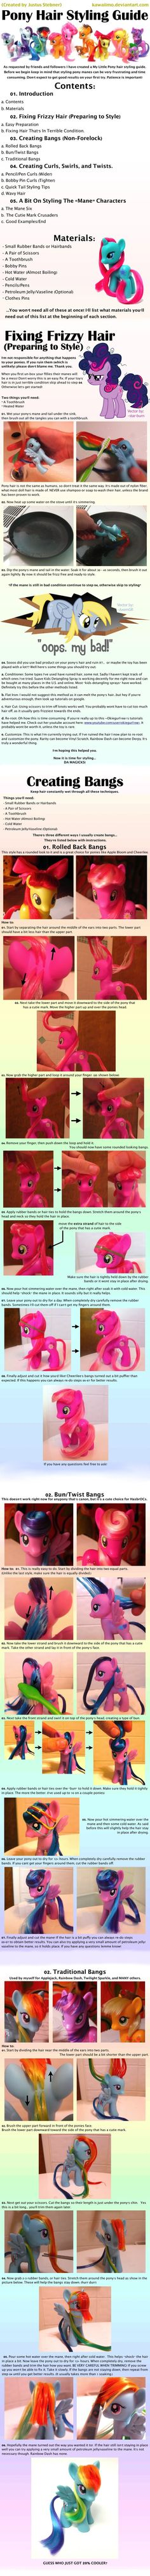 Pony Hair Styling Guide 1/2